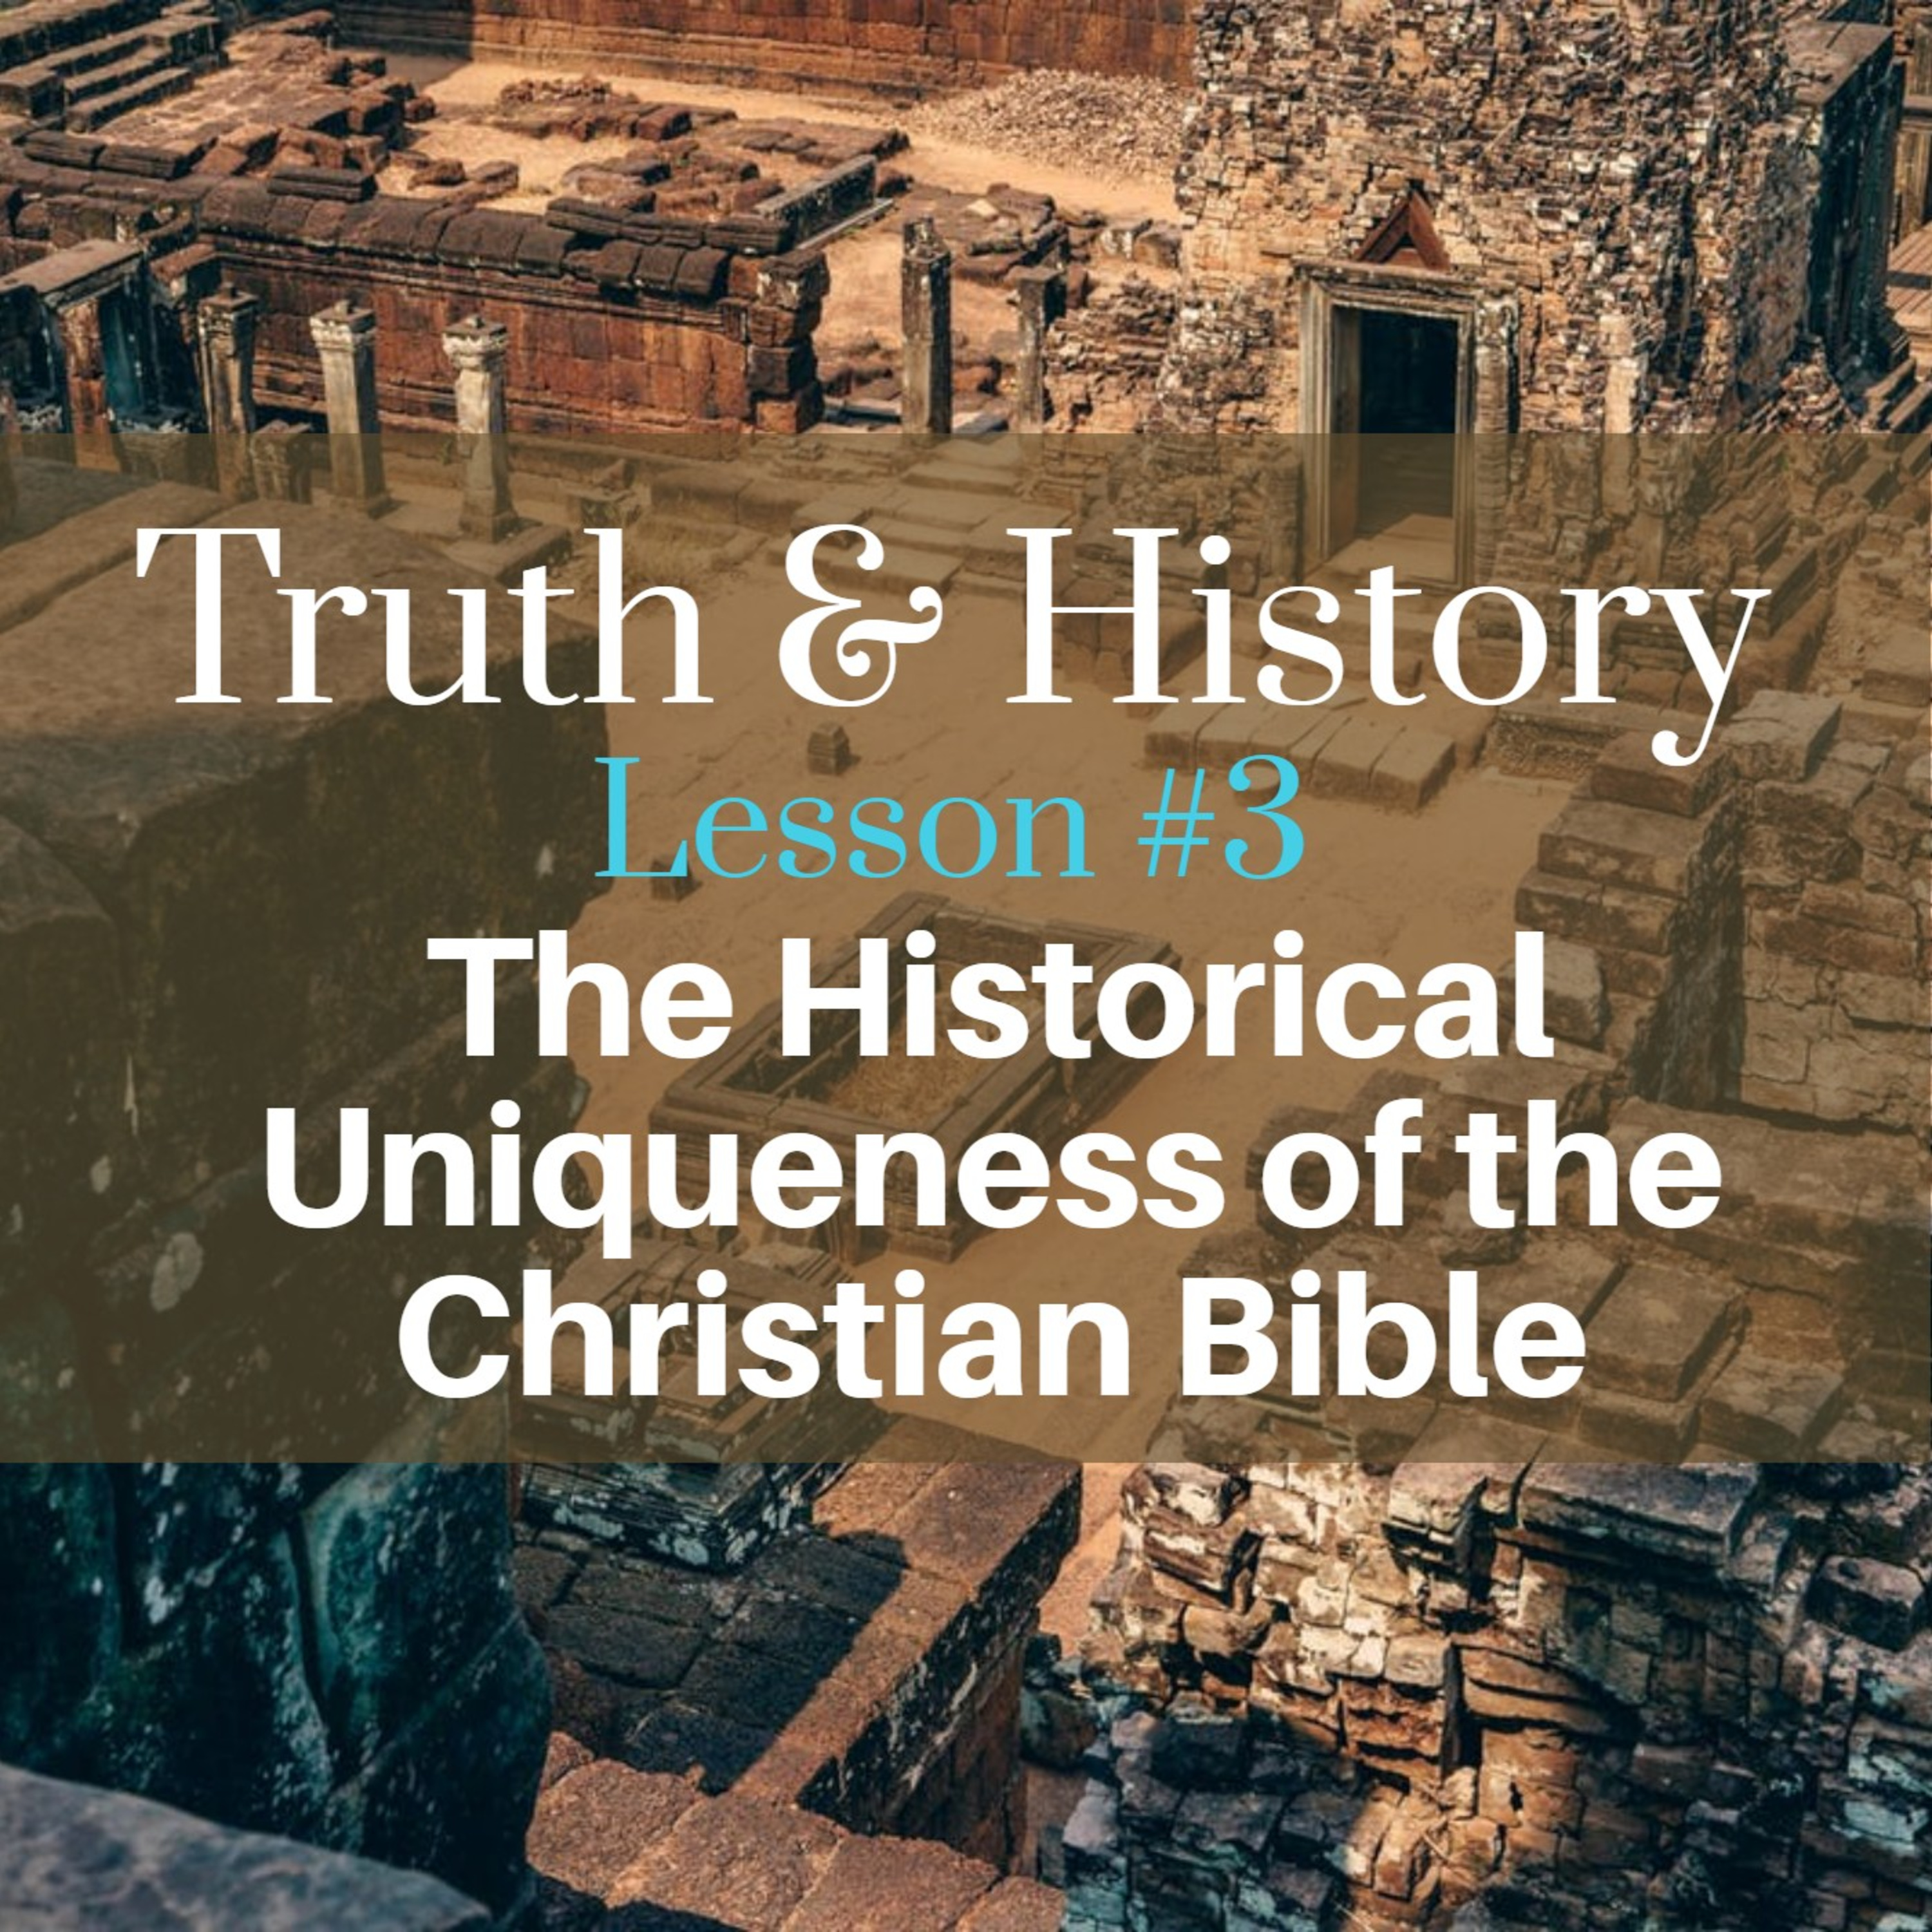 Truth & History, Lesson #3: The Historical Uniqueness of the Christian Bible